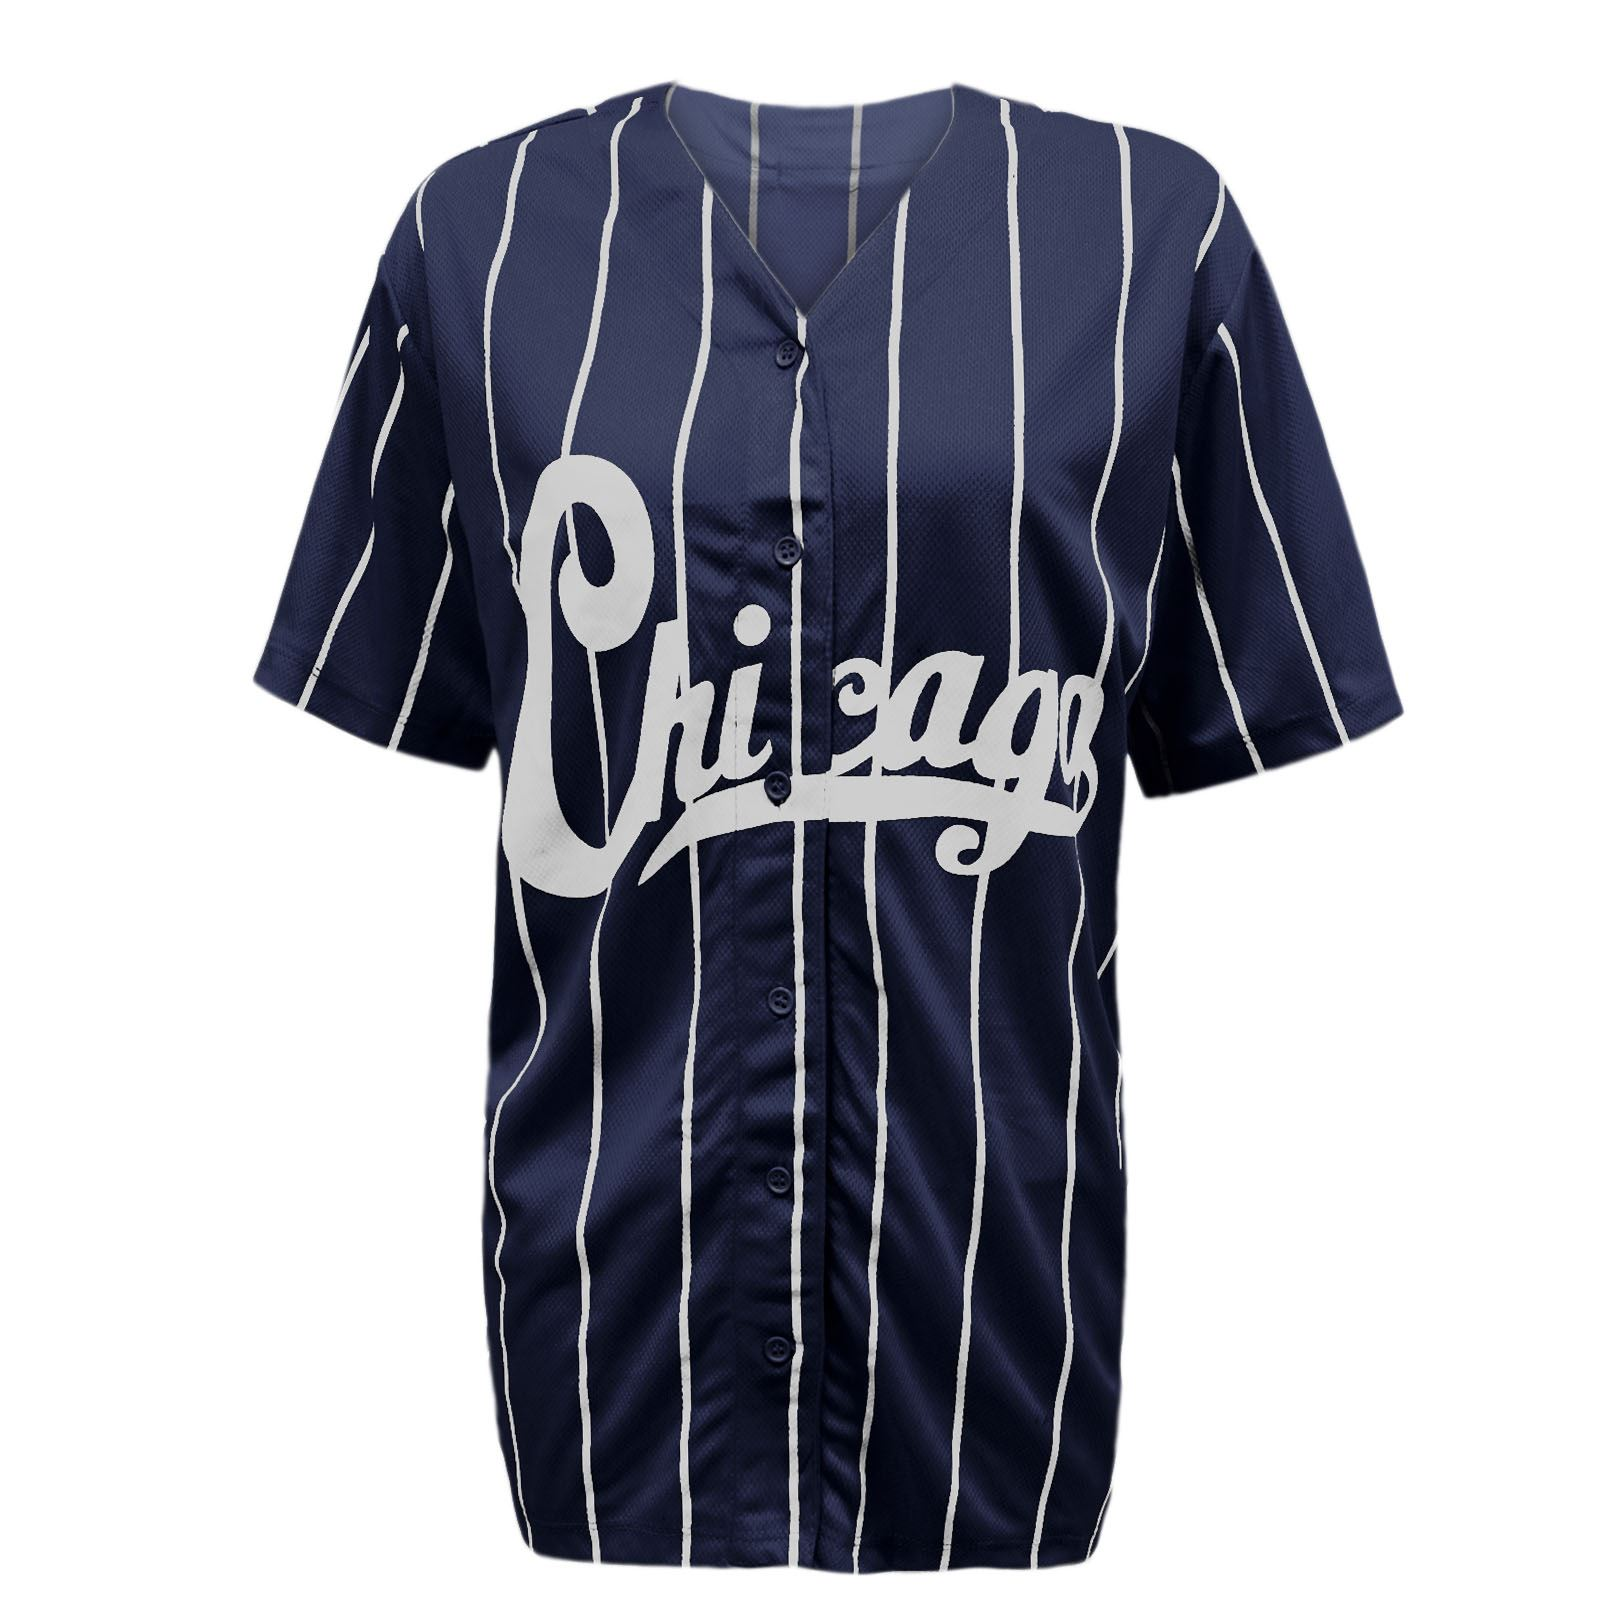 new womens ladies chicago varsity stripes american baseball jersey top t shirt ebay. Black Bedroom Furniture Sets. Home Design Ideas